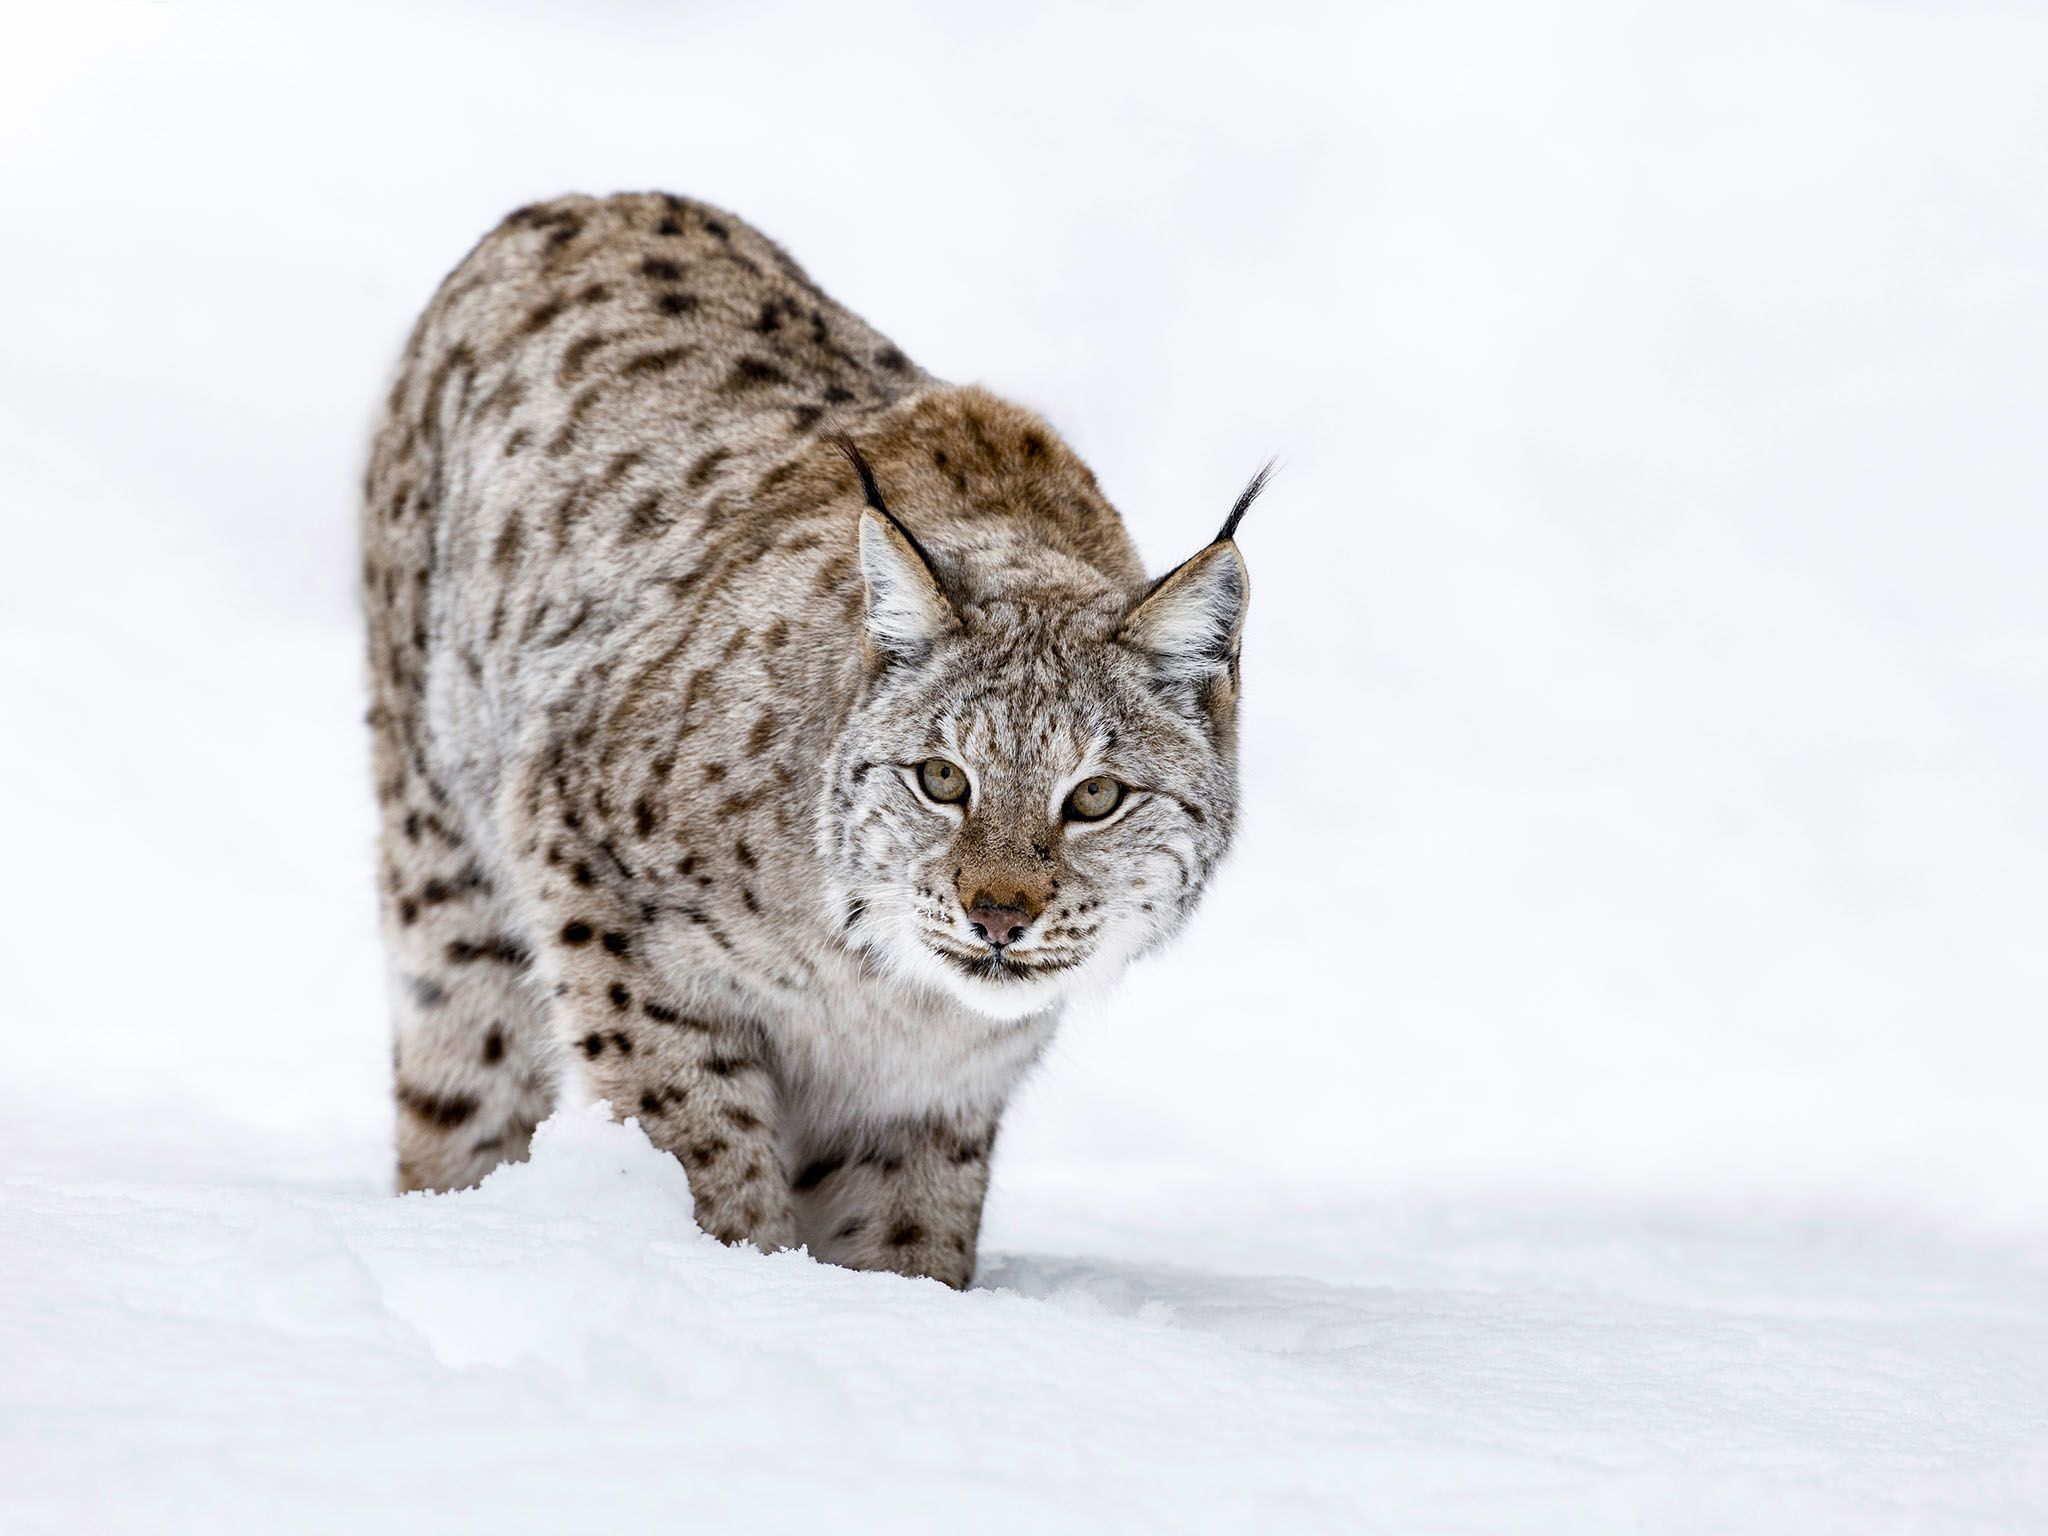 A Lynx in winter snow. This image is from Winter Wonderland. [Photo of the day - 十二月 2015]